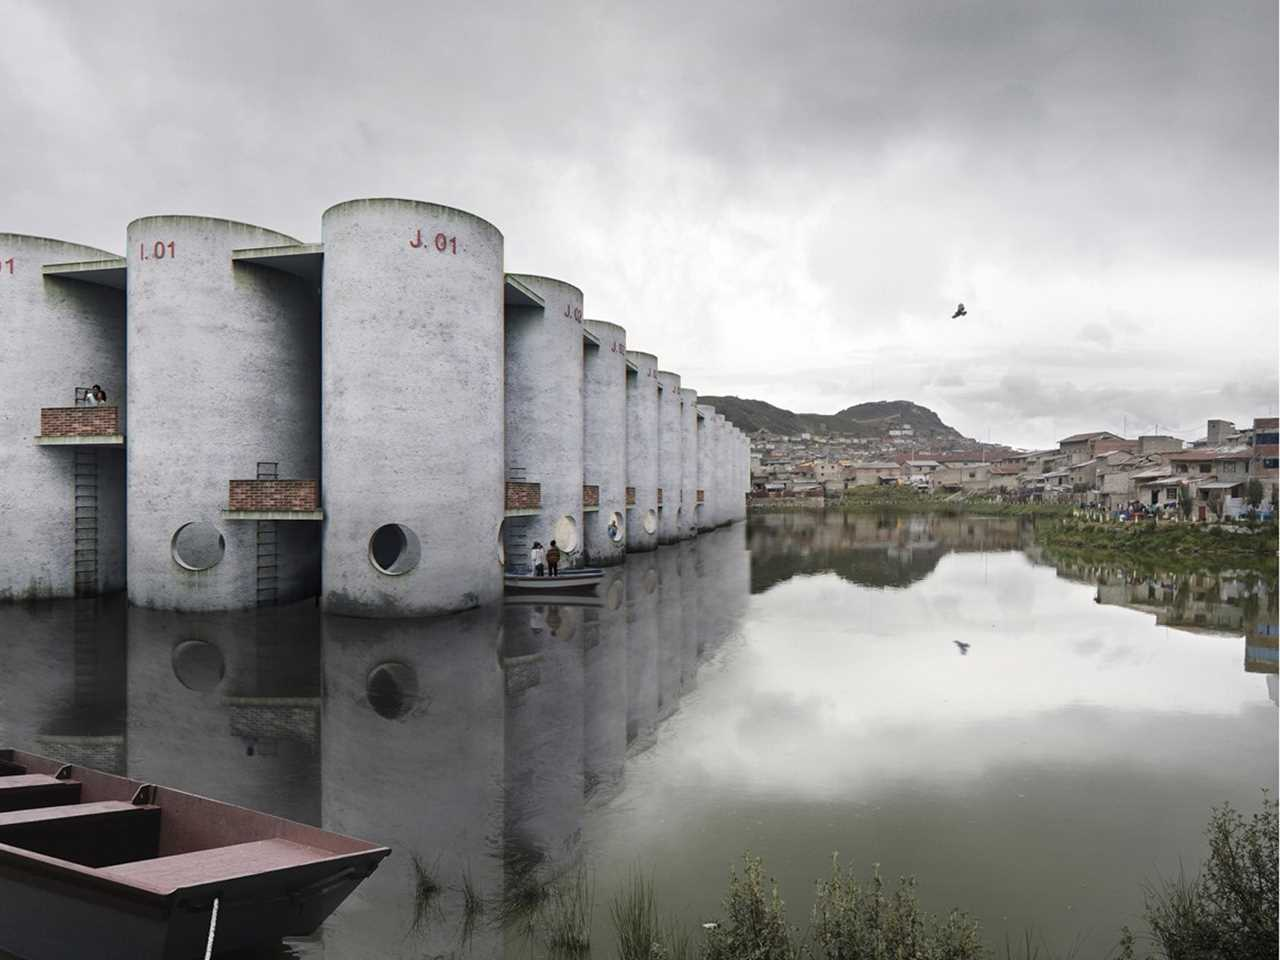 Public baths and sewage treatment plant, Cerro de Pasco, Peru